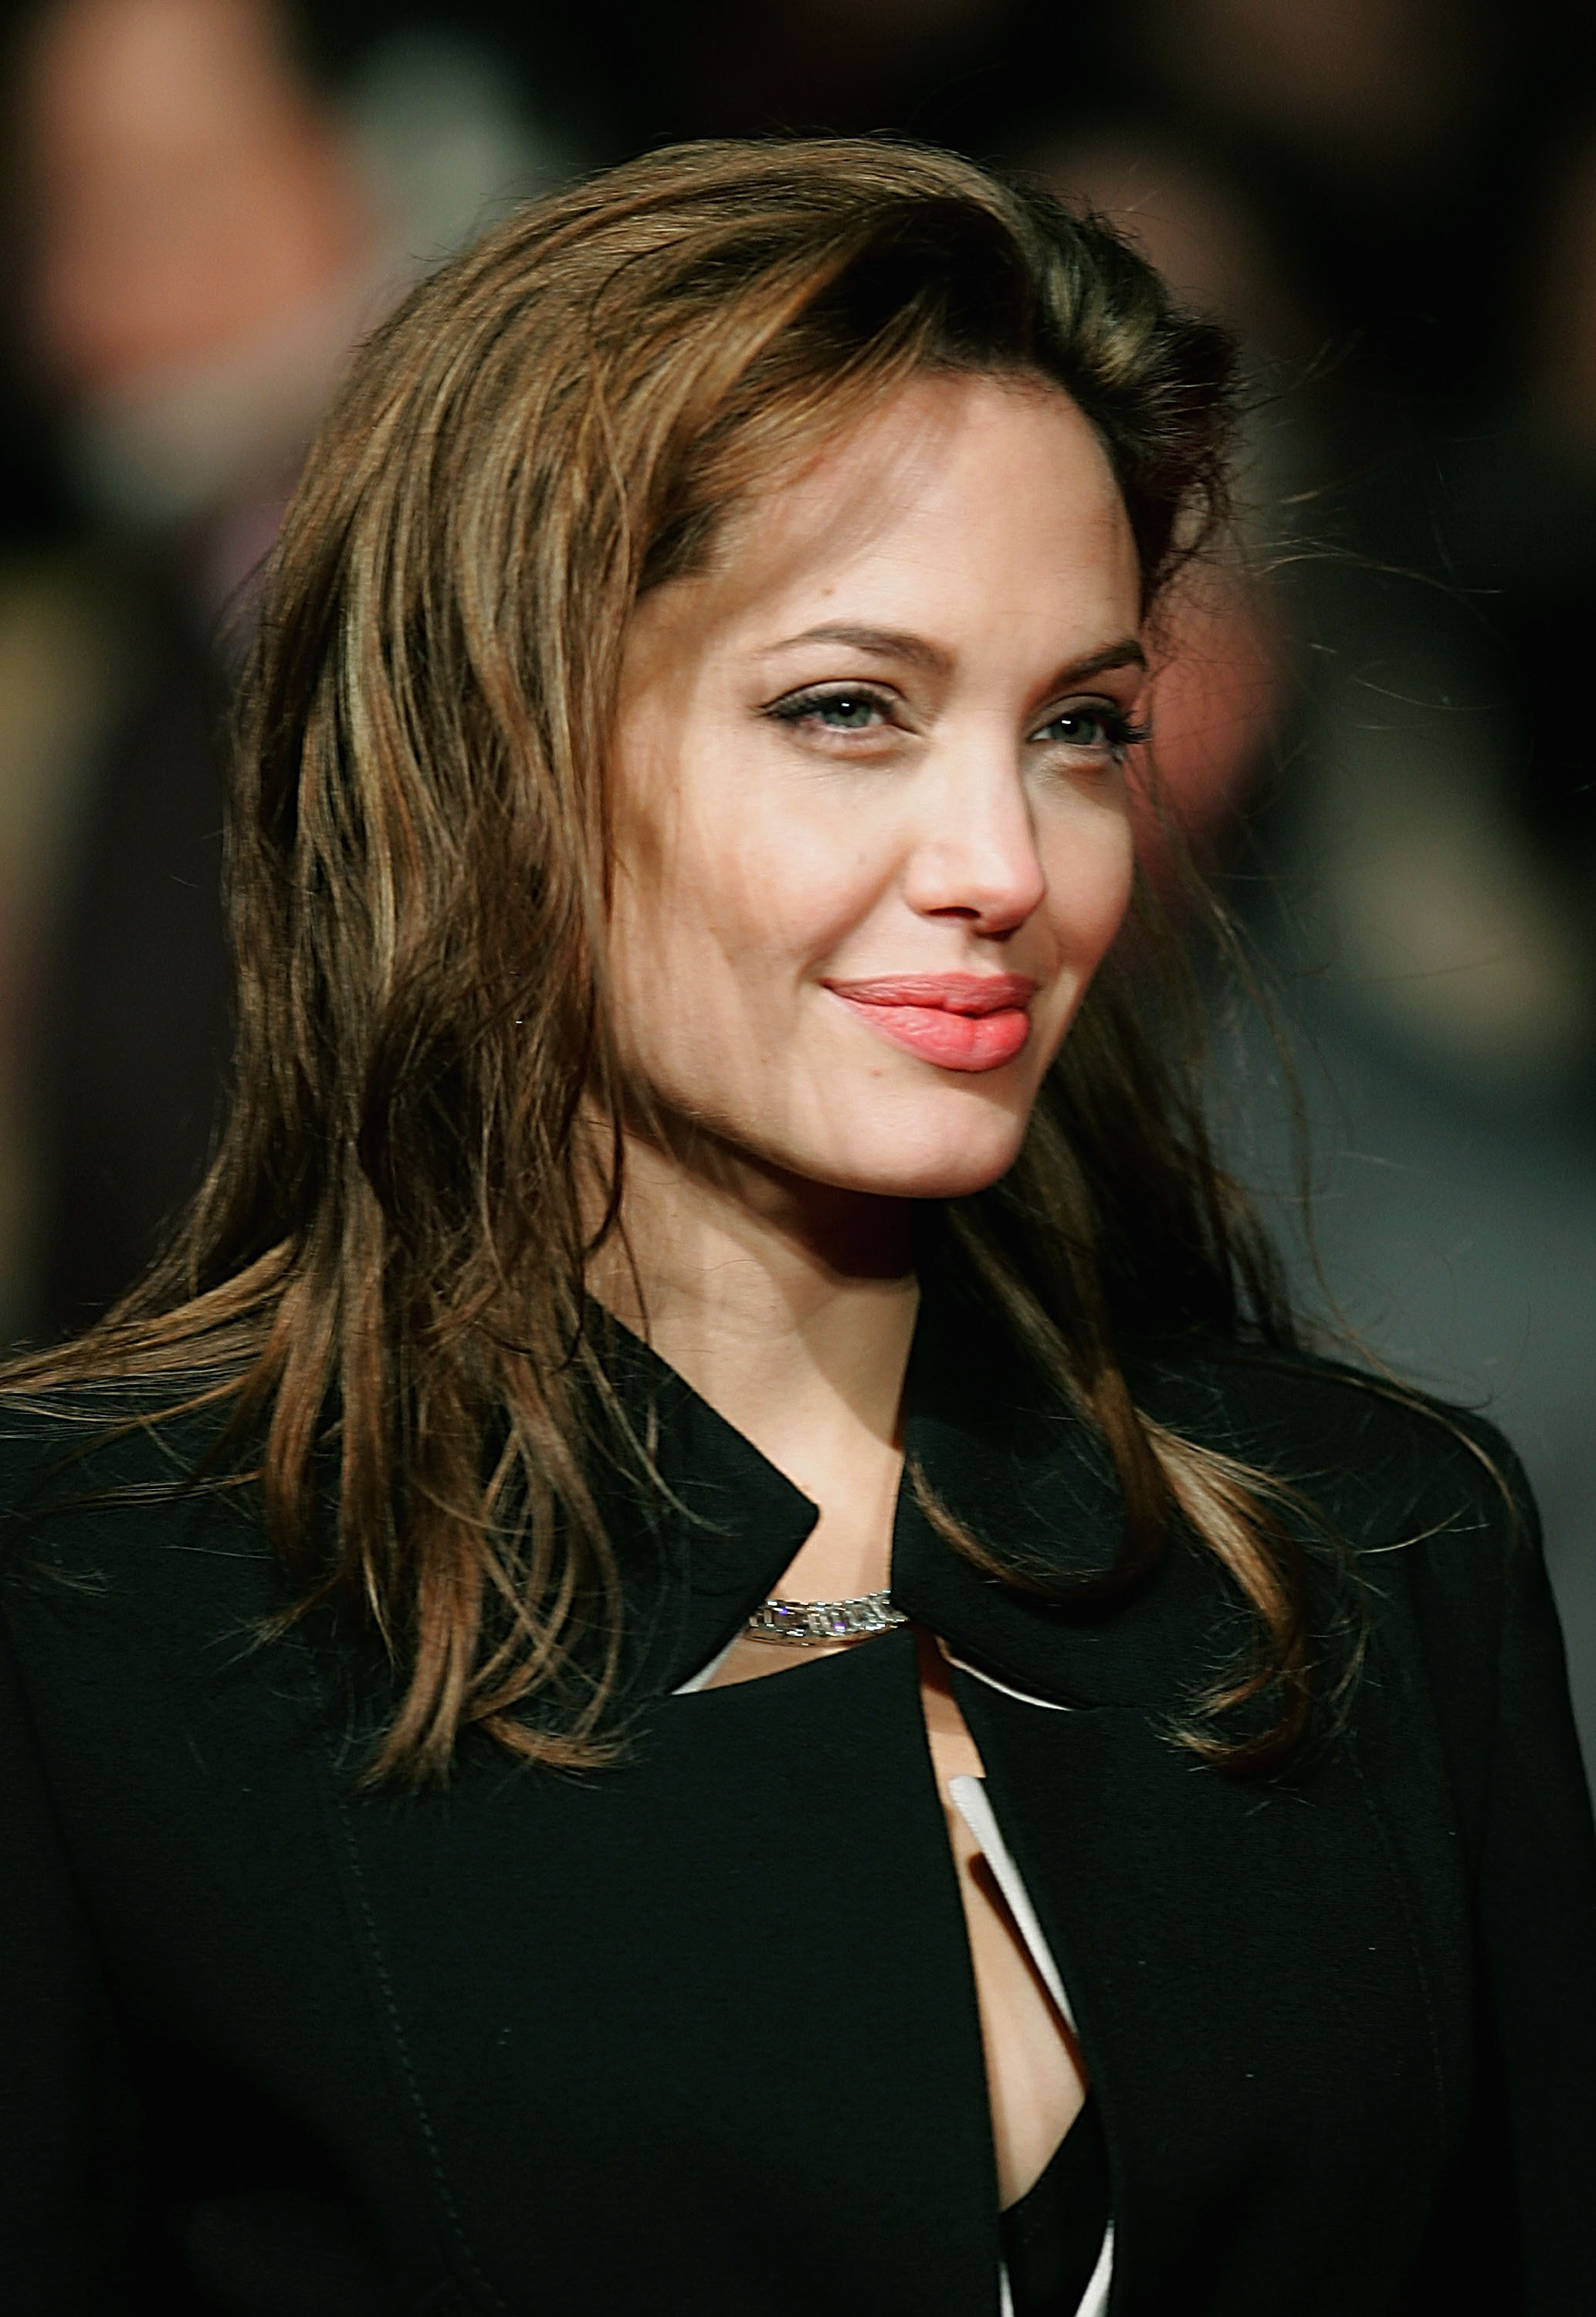 Angelina Jolie Free Download Wallpaper For Mobile